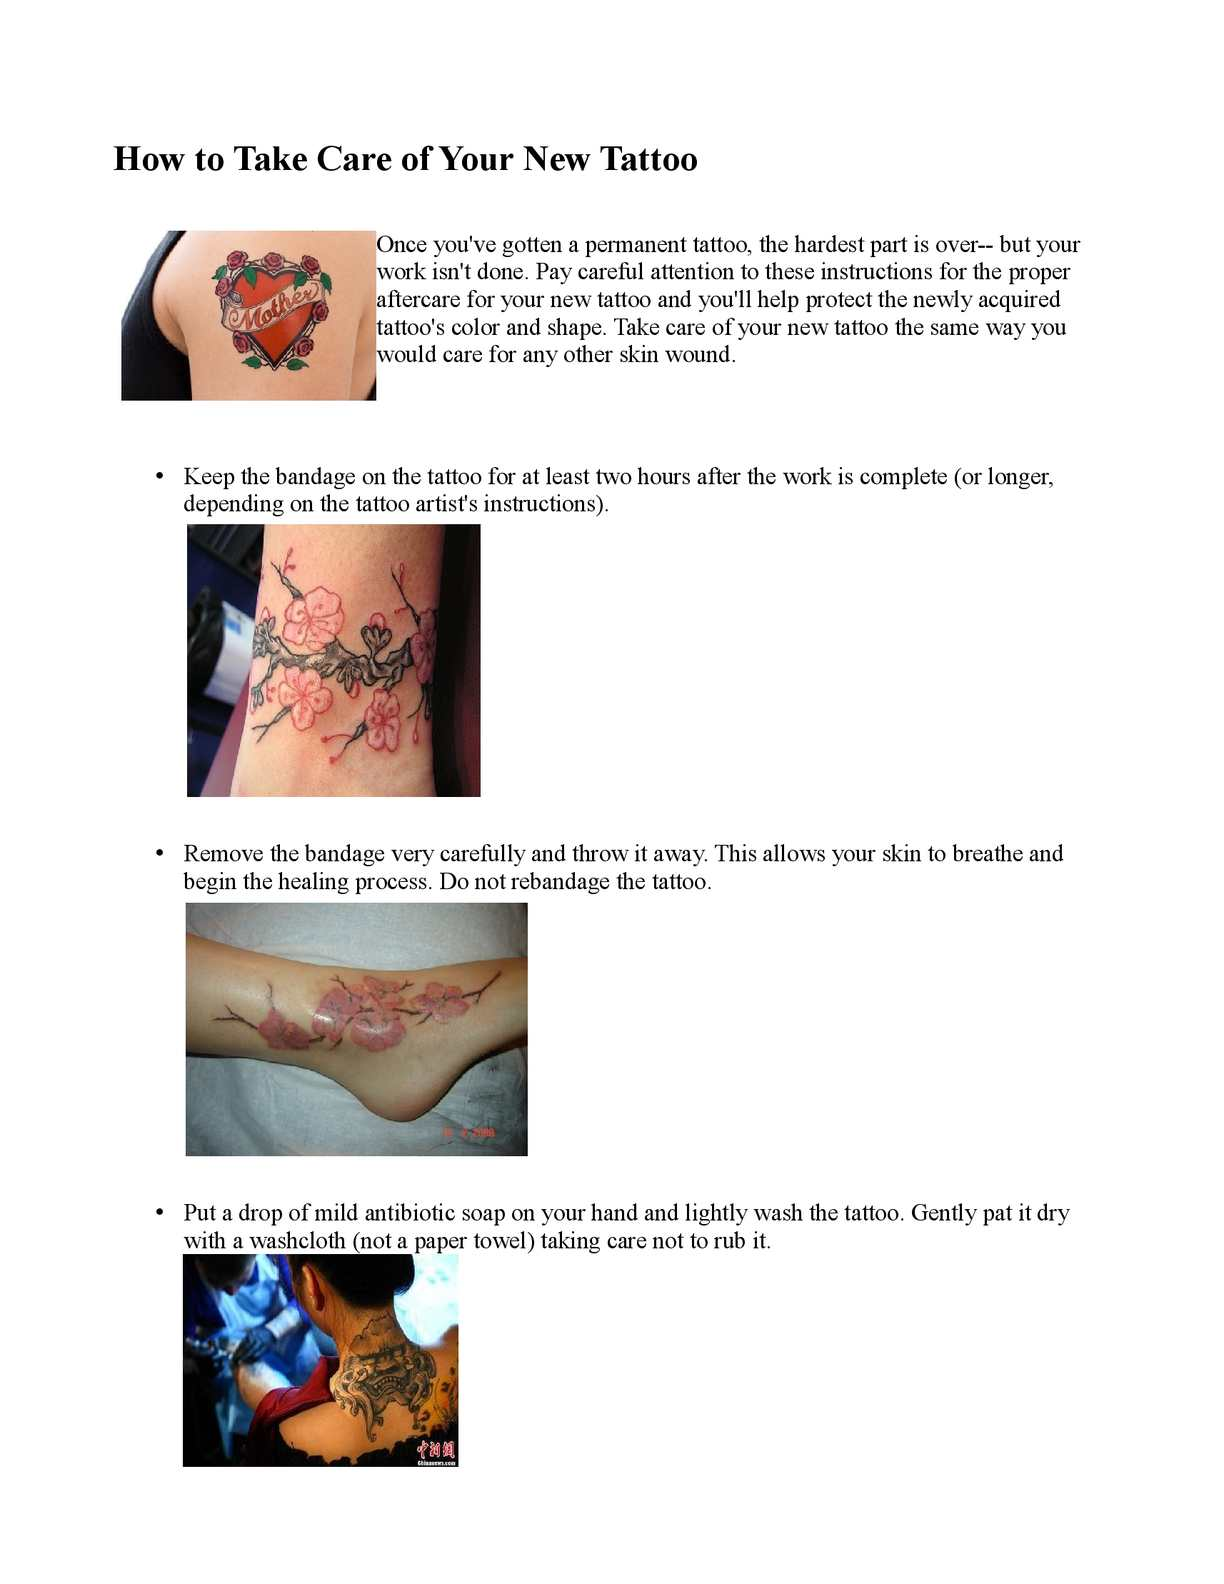 Calaméo - How to Take Care of Your New Tattoo - Tattoo Care Instructions